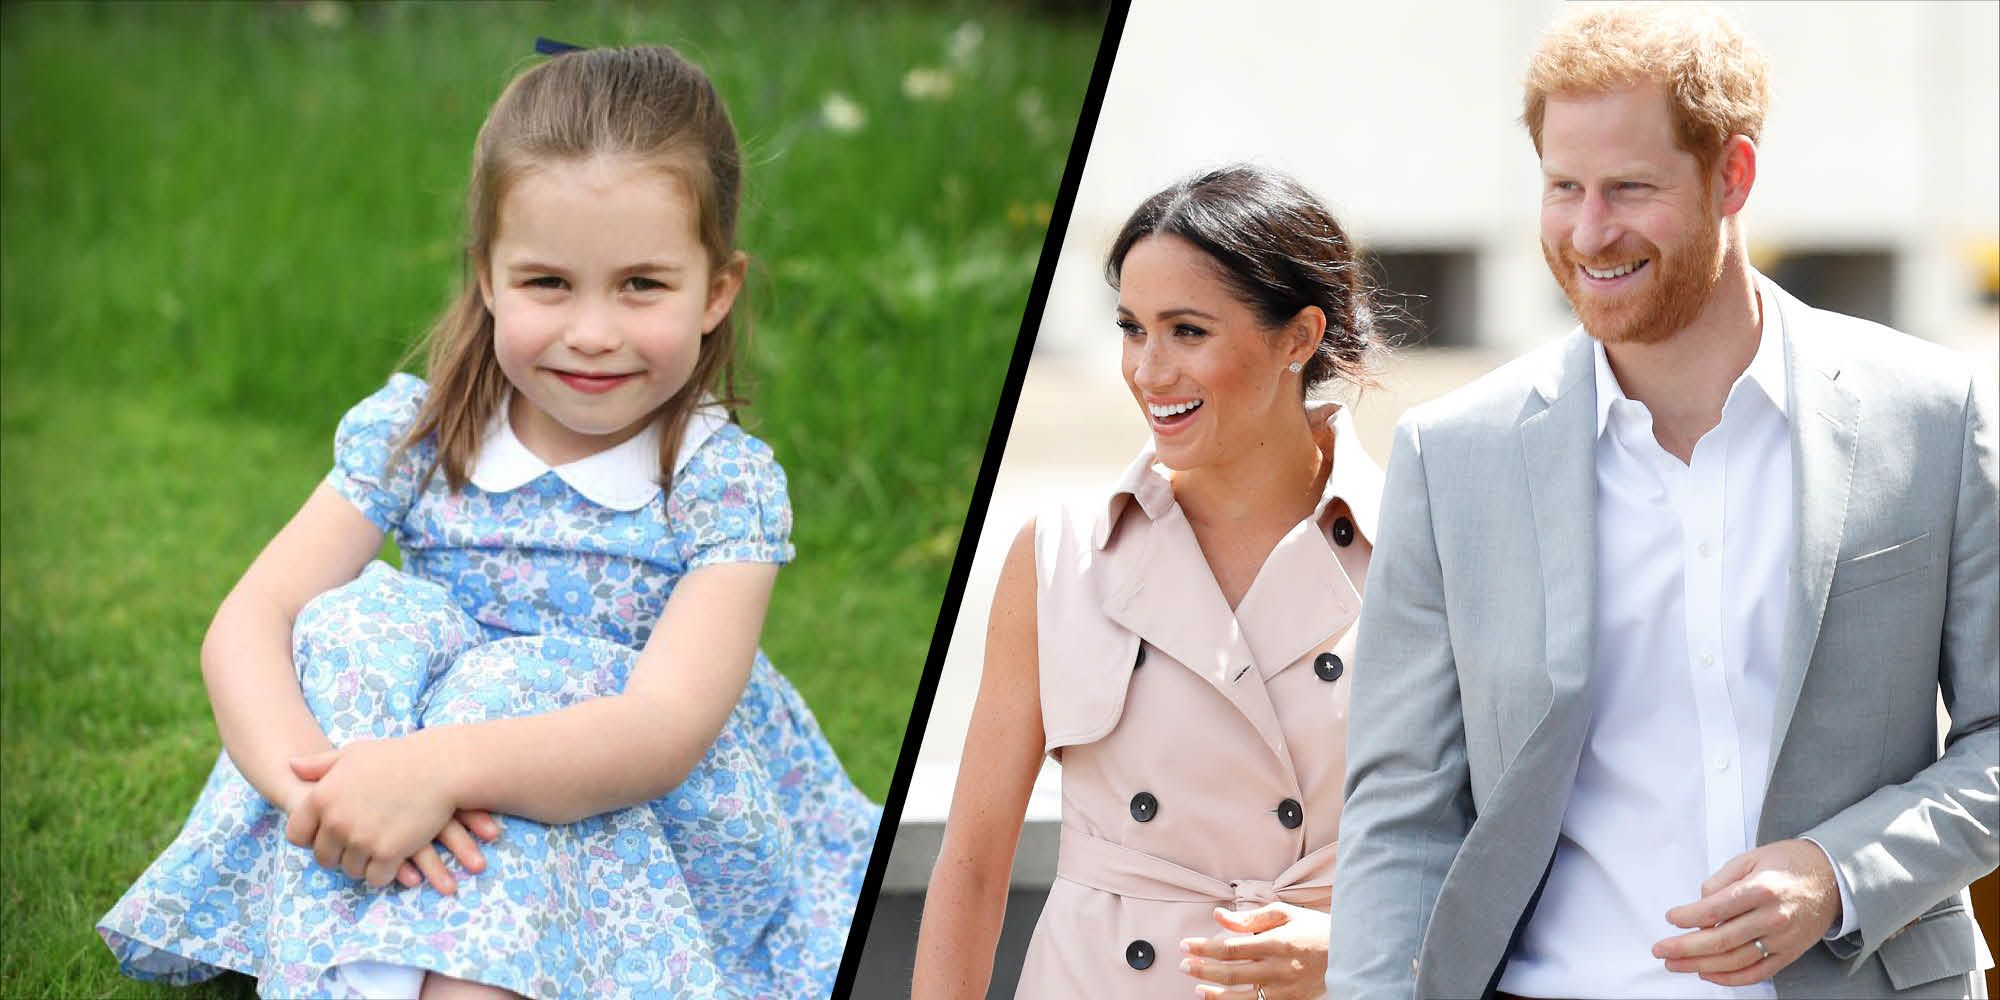 The Duke and Duchess of Sussex share a touching birthday message for Princess Charlotte